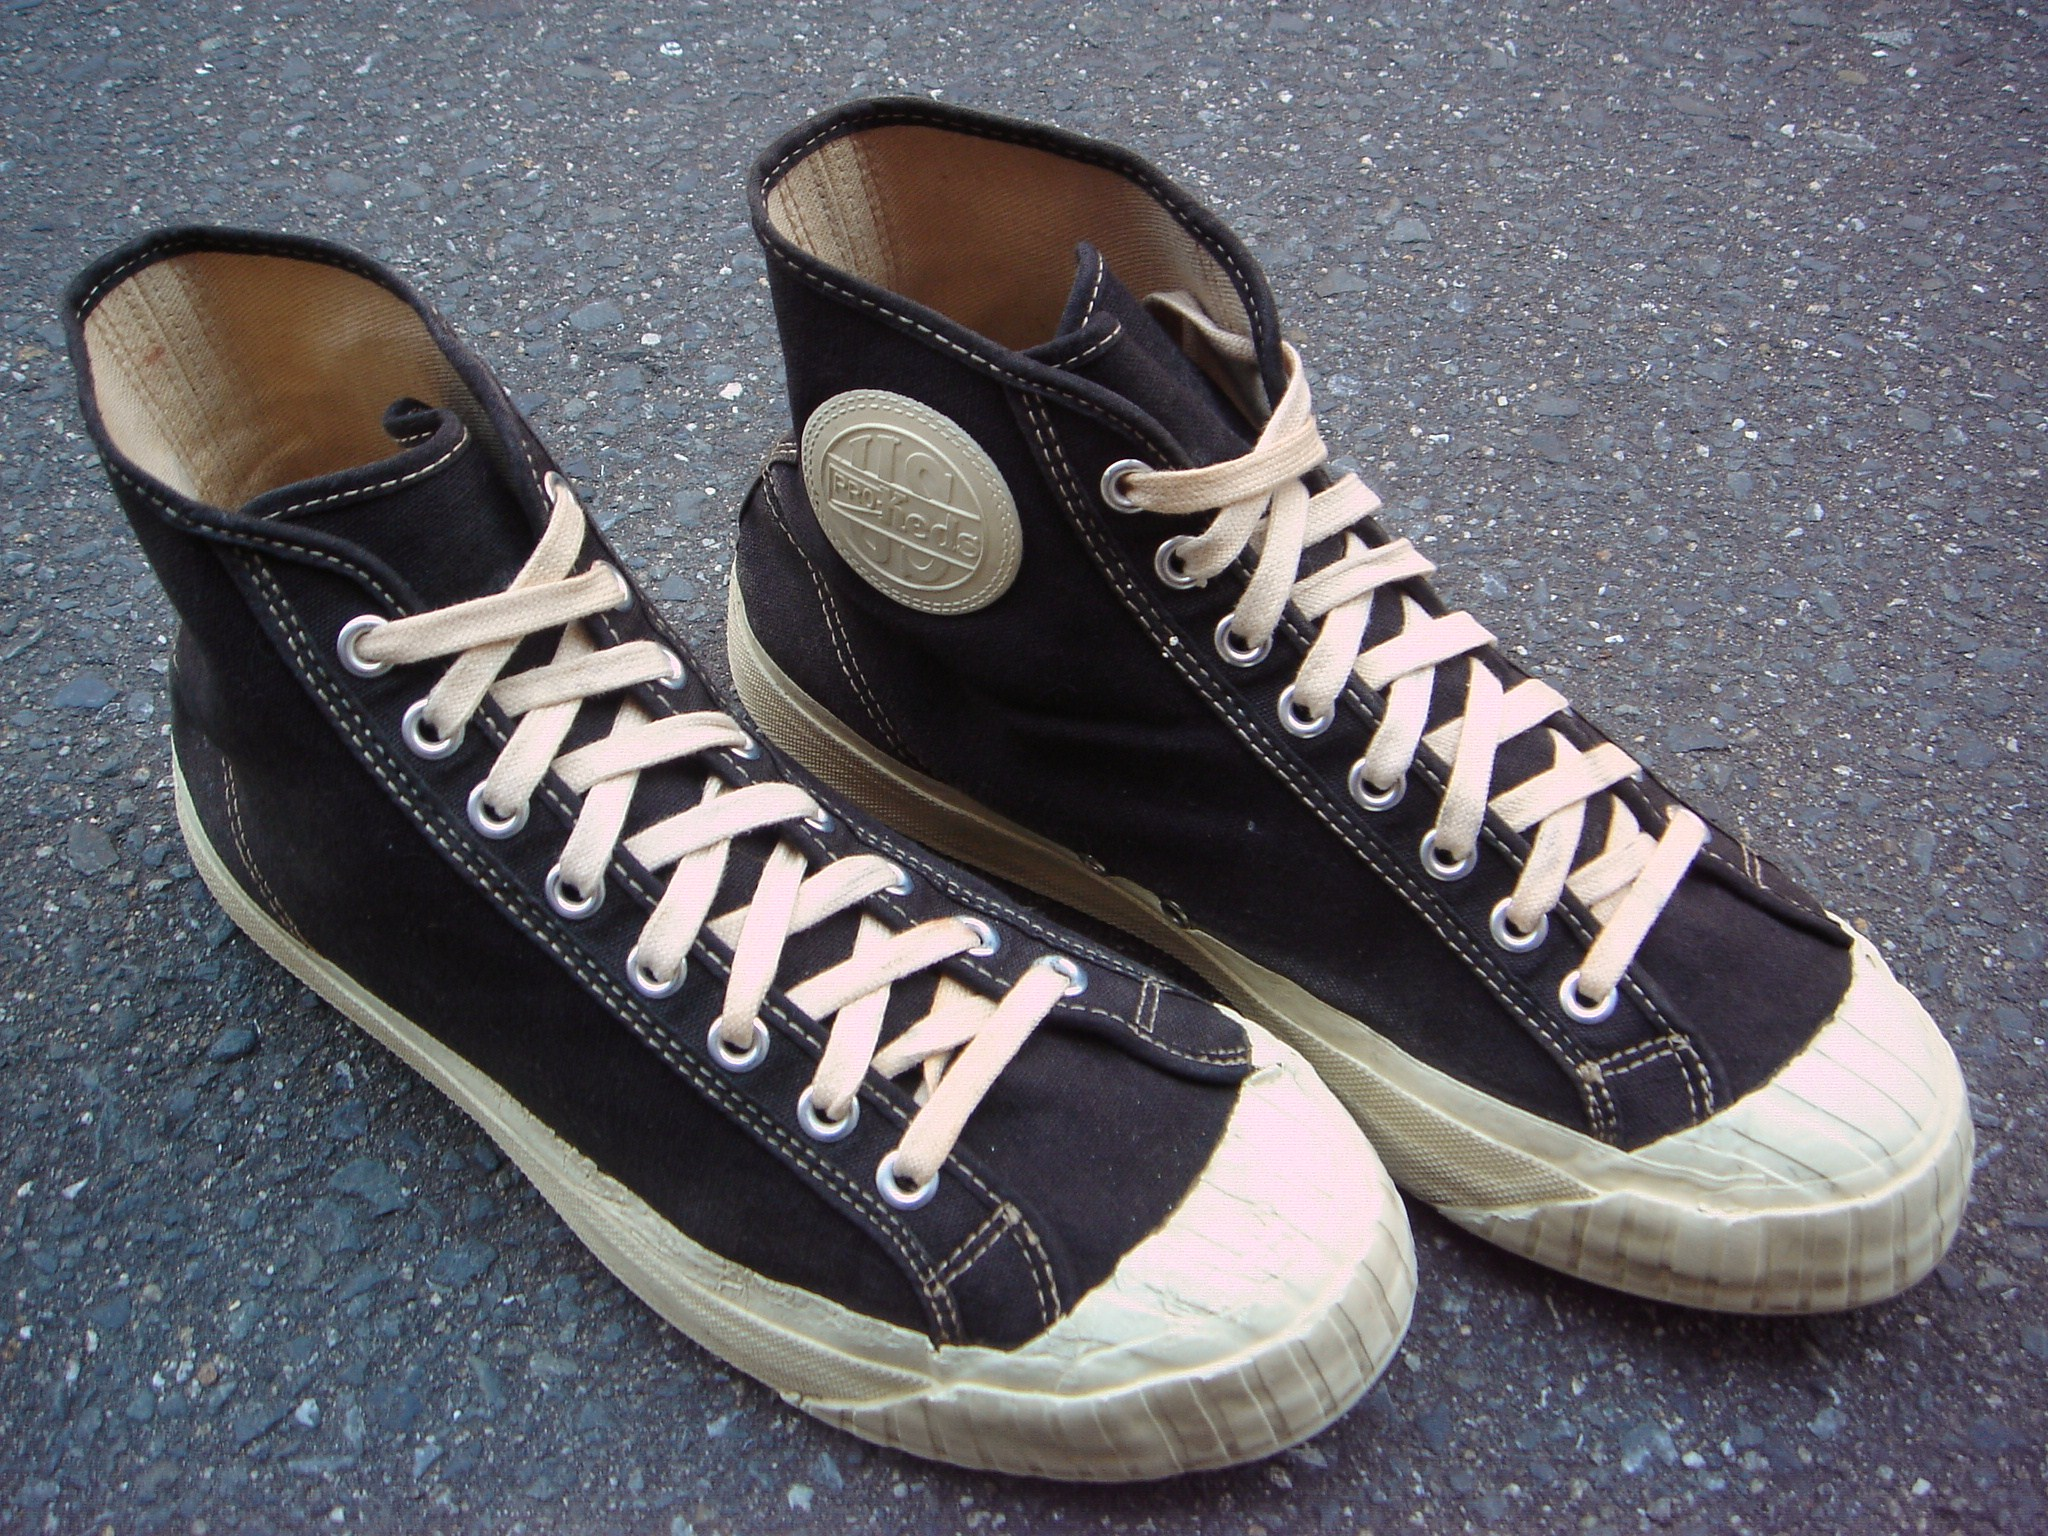 pro keds discontinued shoes